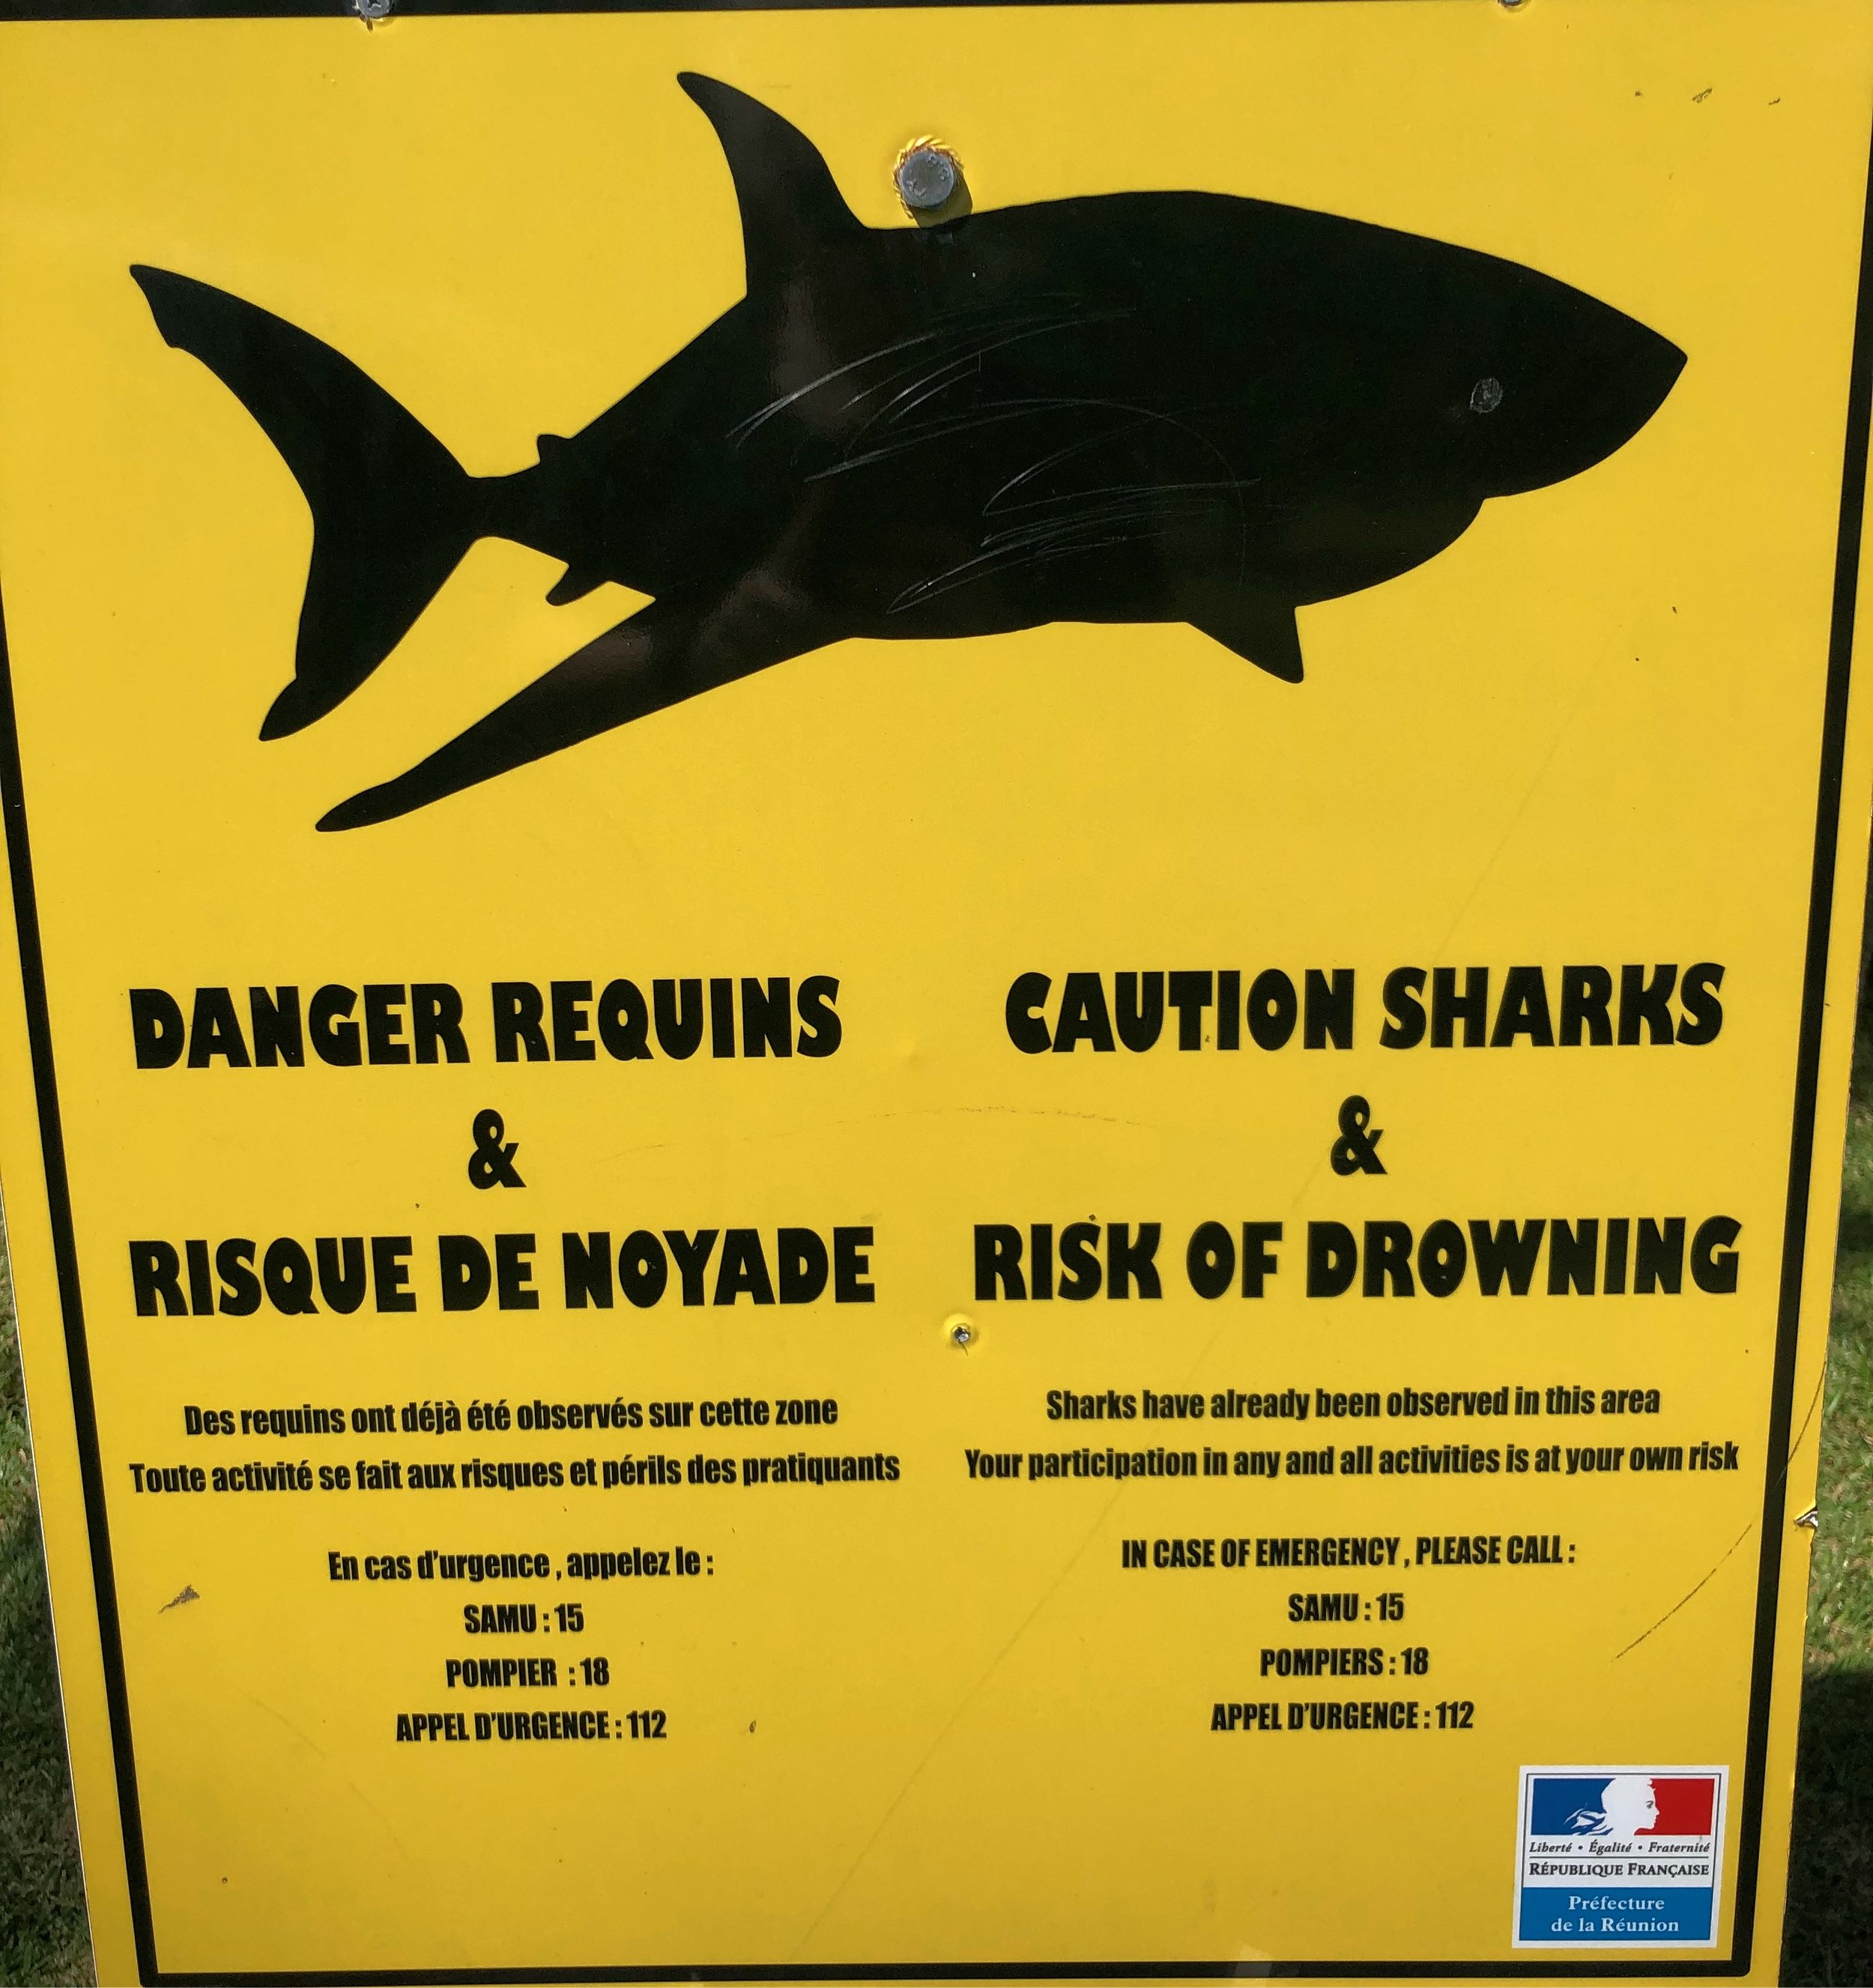 Caution - sharks!